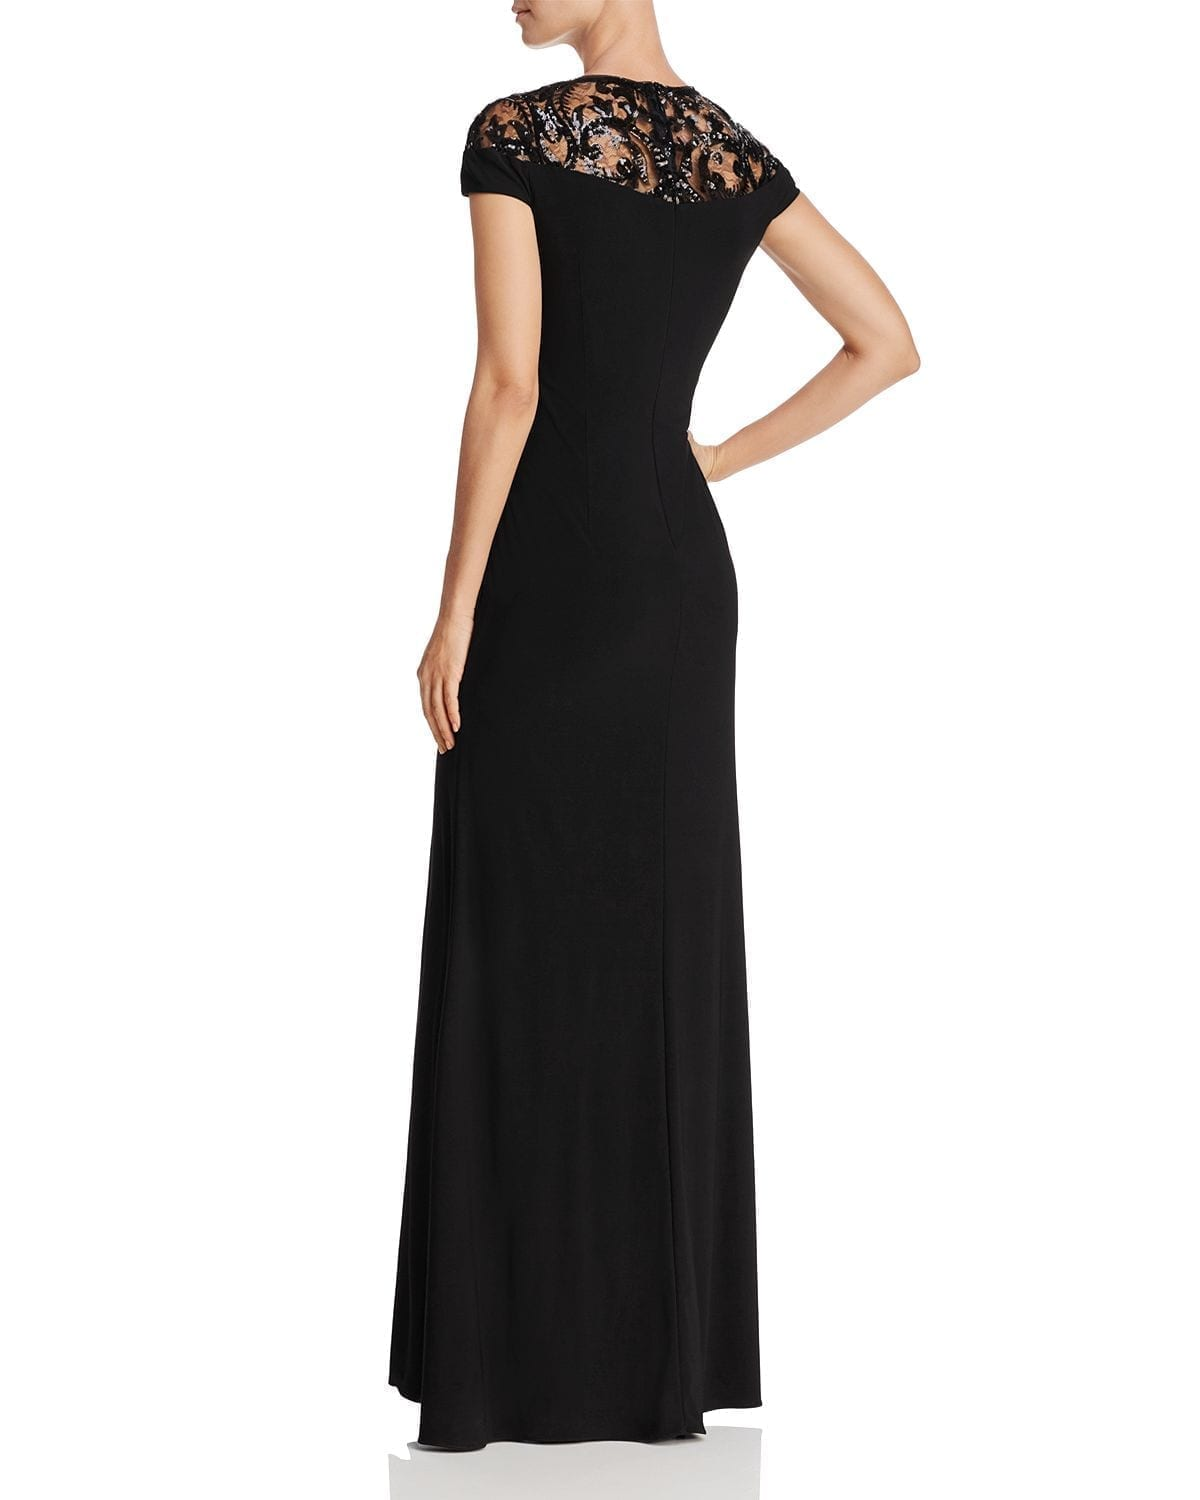 ADRIANNA PAPELL Embellished Illusion-Yoke Gown